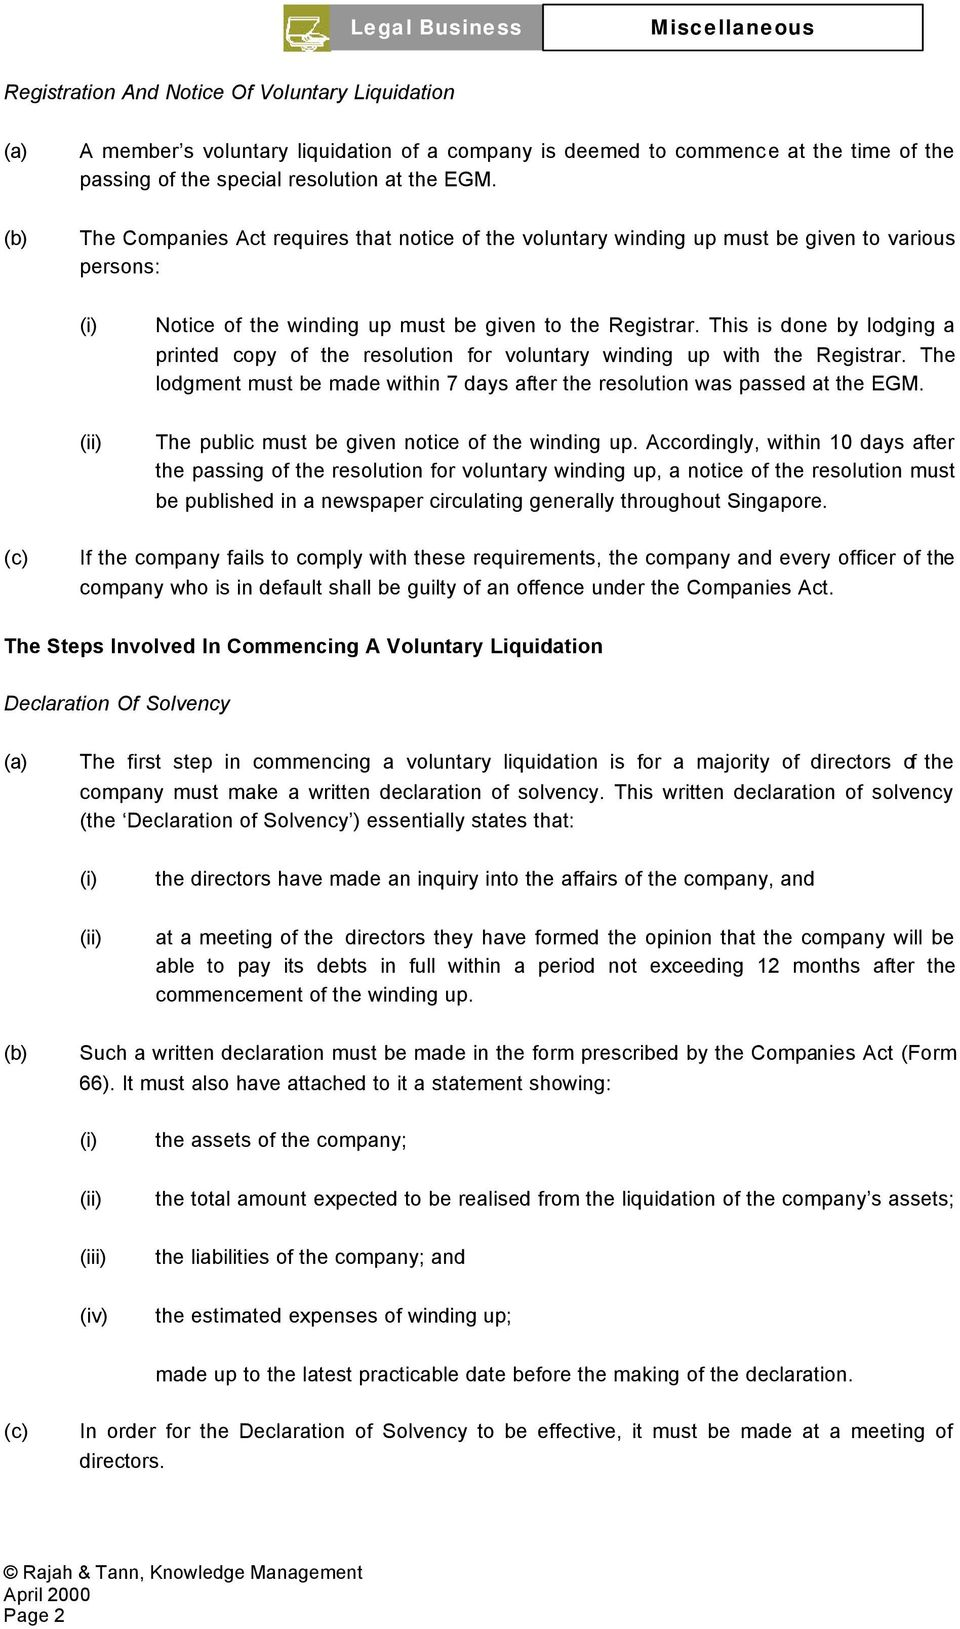 This is done by lodging a printed copy of the resolution for voluntary winding up with the Registrar. The lodgment must be made within 7 days after the resolution was passed at the EGM.